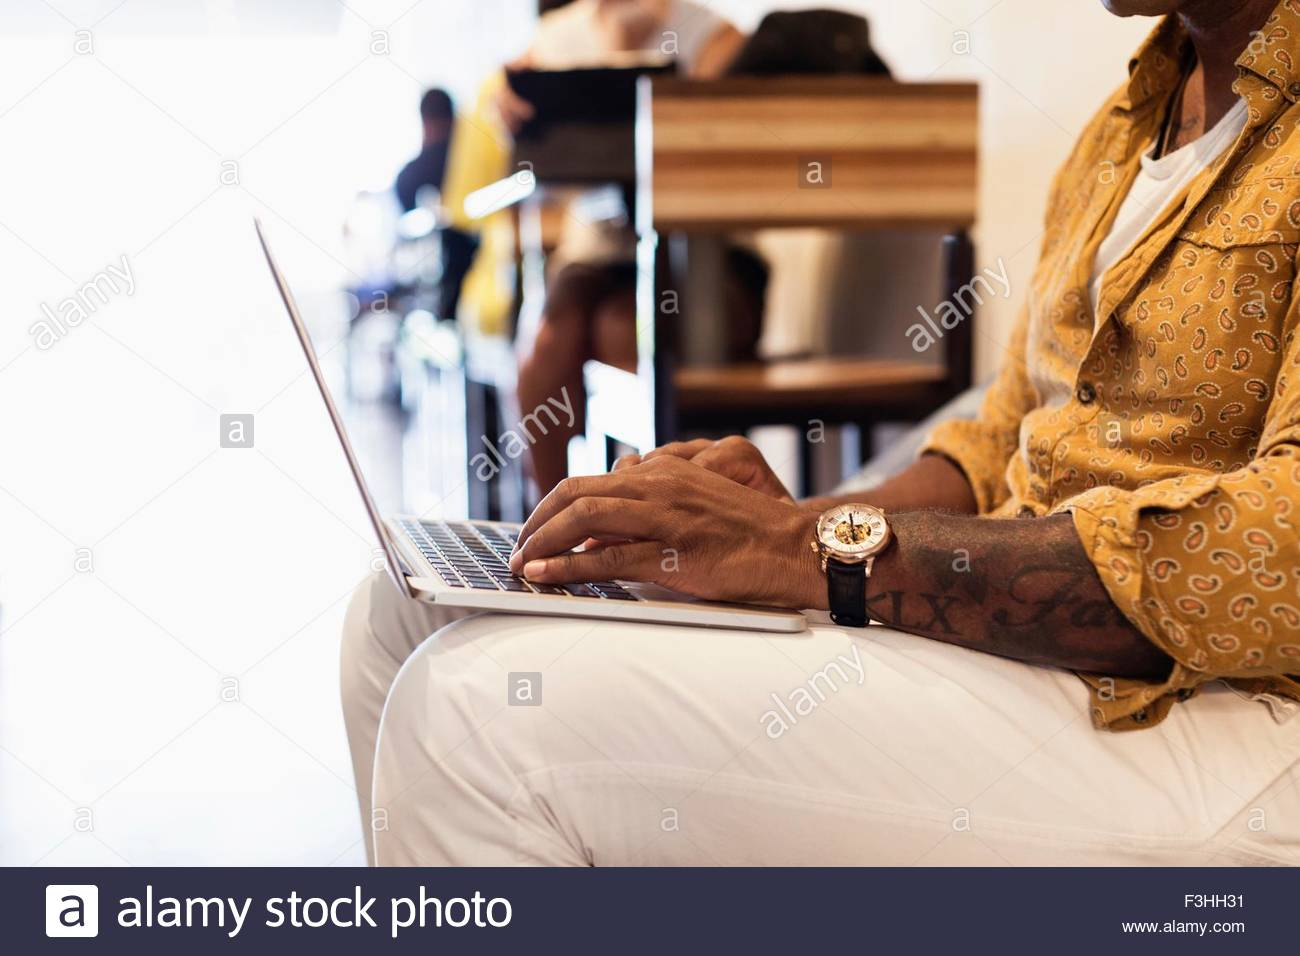 Young man in coffee shop, using laptop, mid section - Stock Image